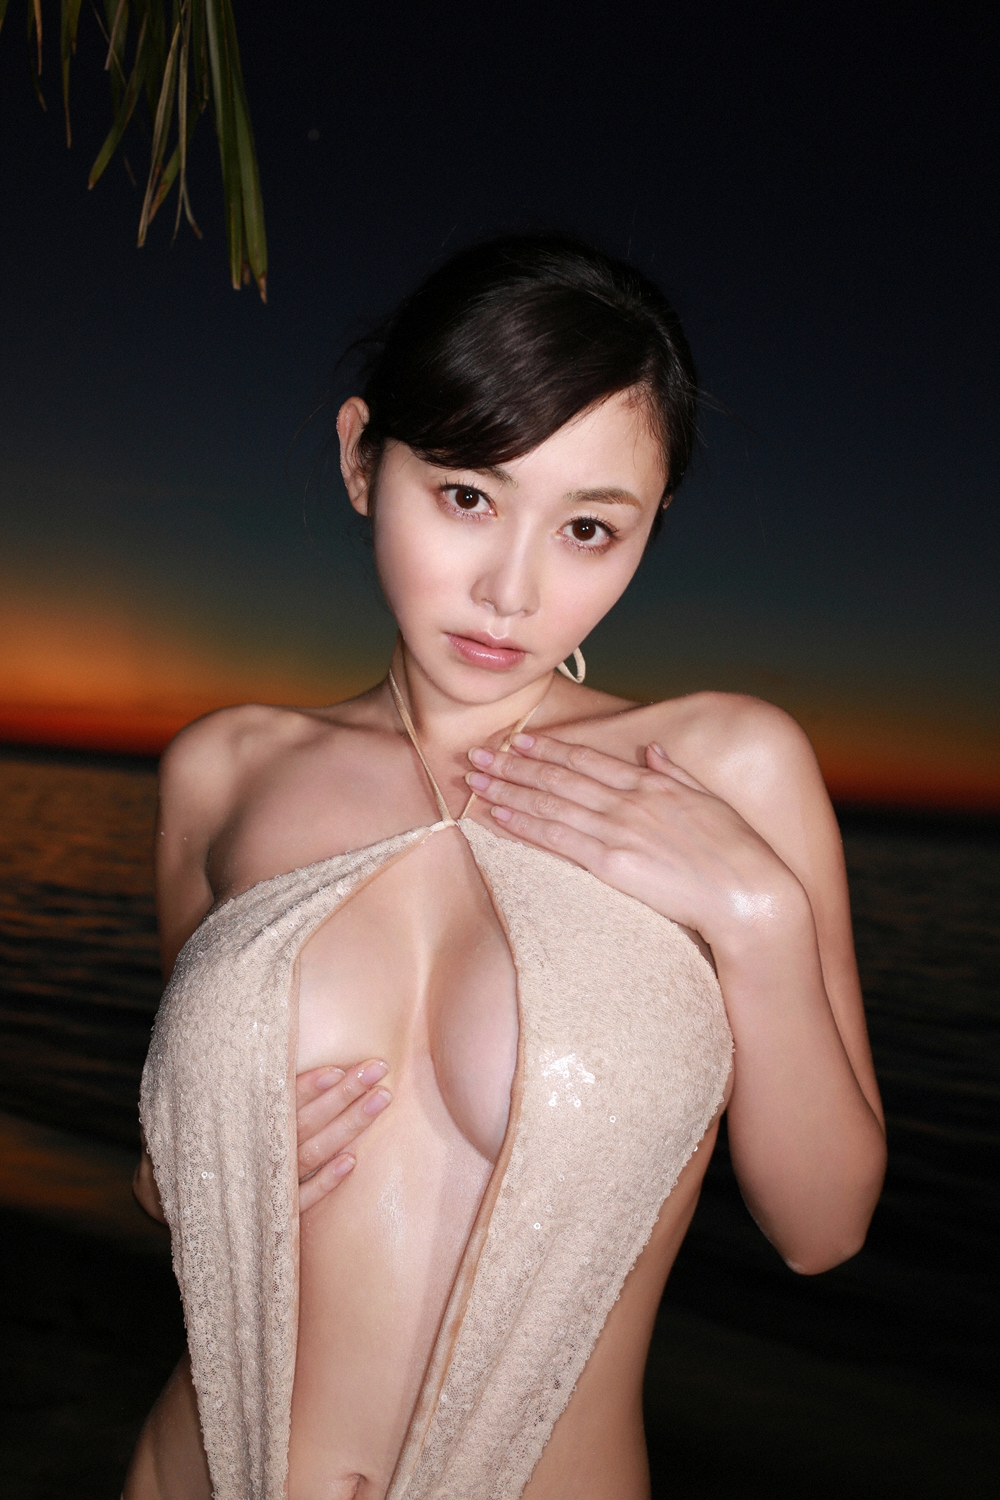 杉原杏璃 Anri Sugihara YS Web Vol 655 Pictures 65